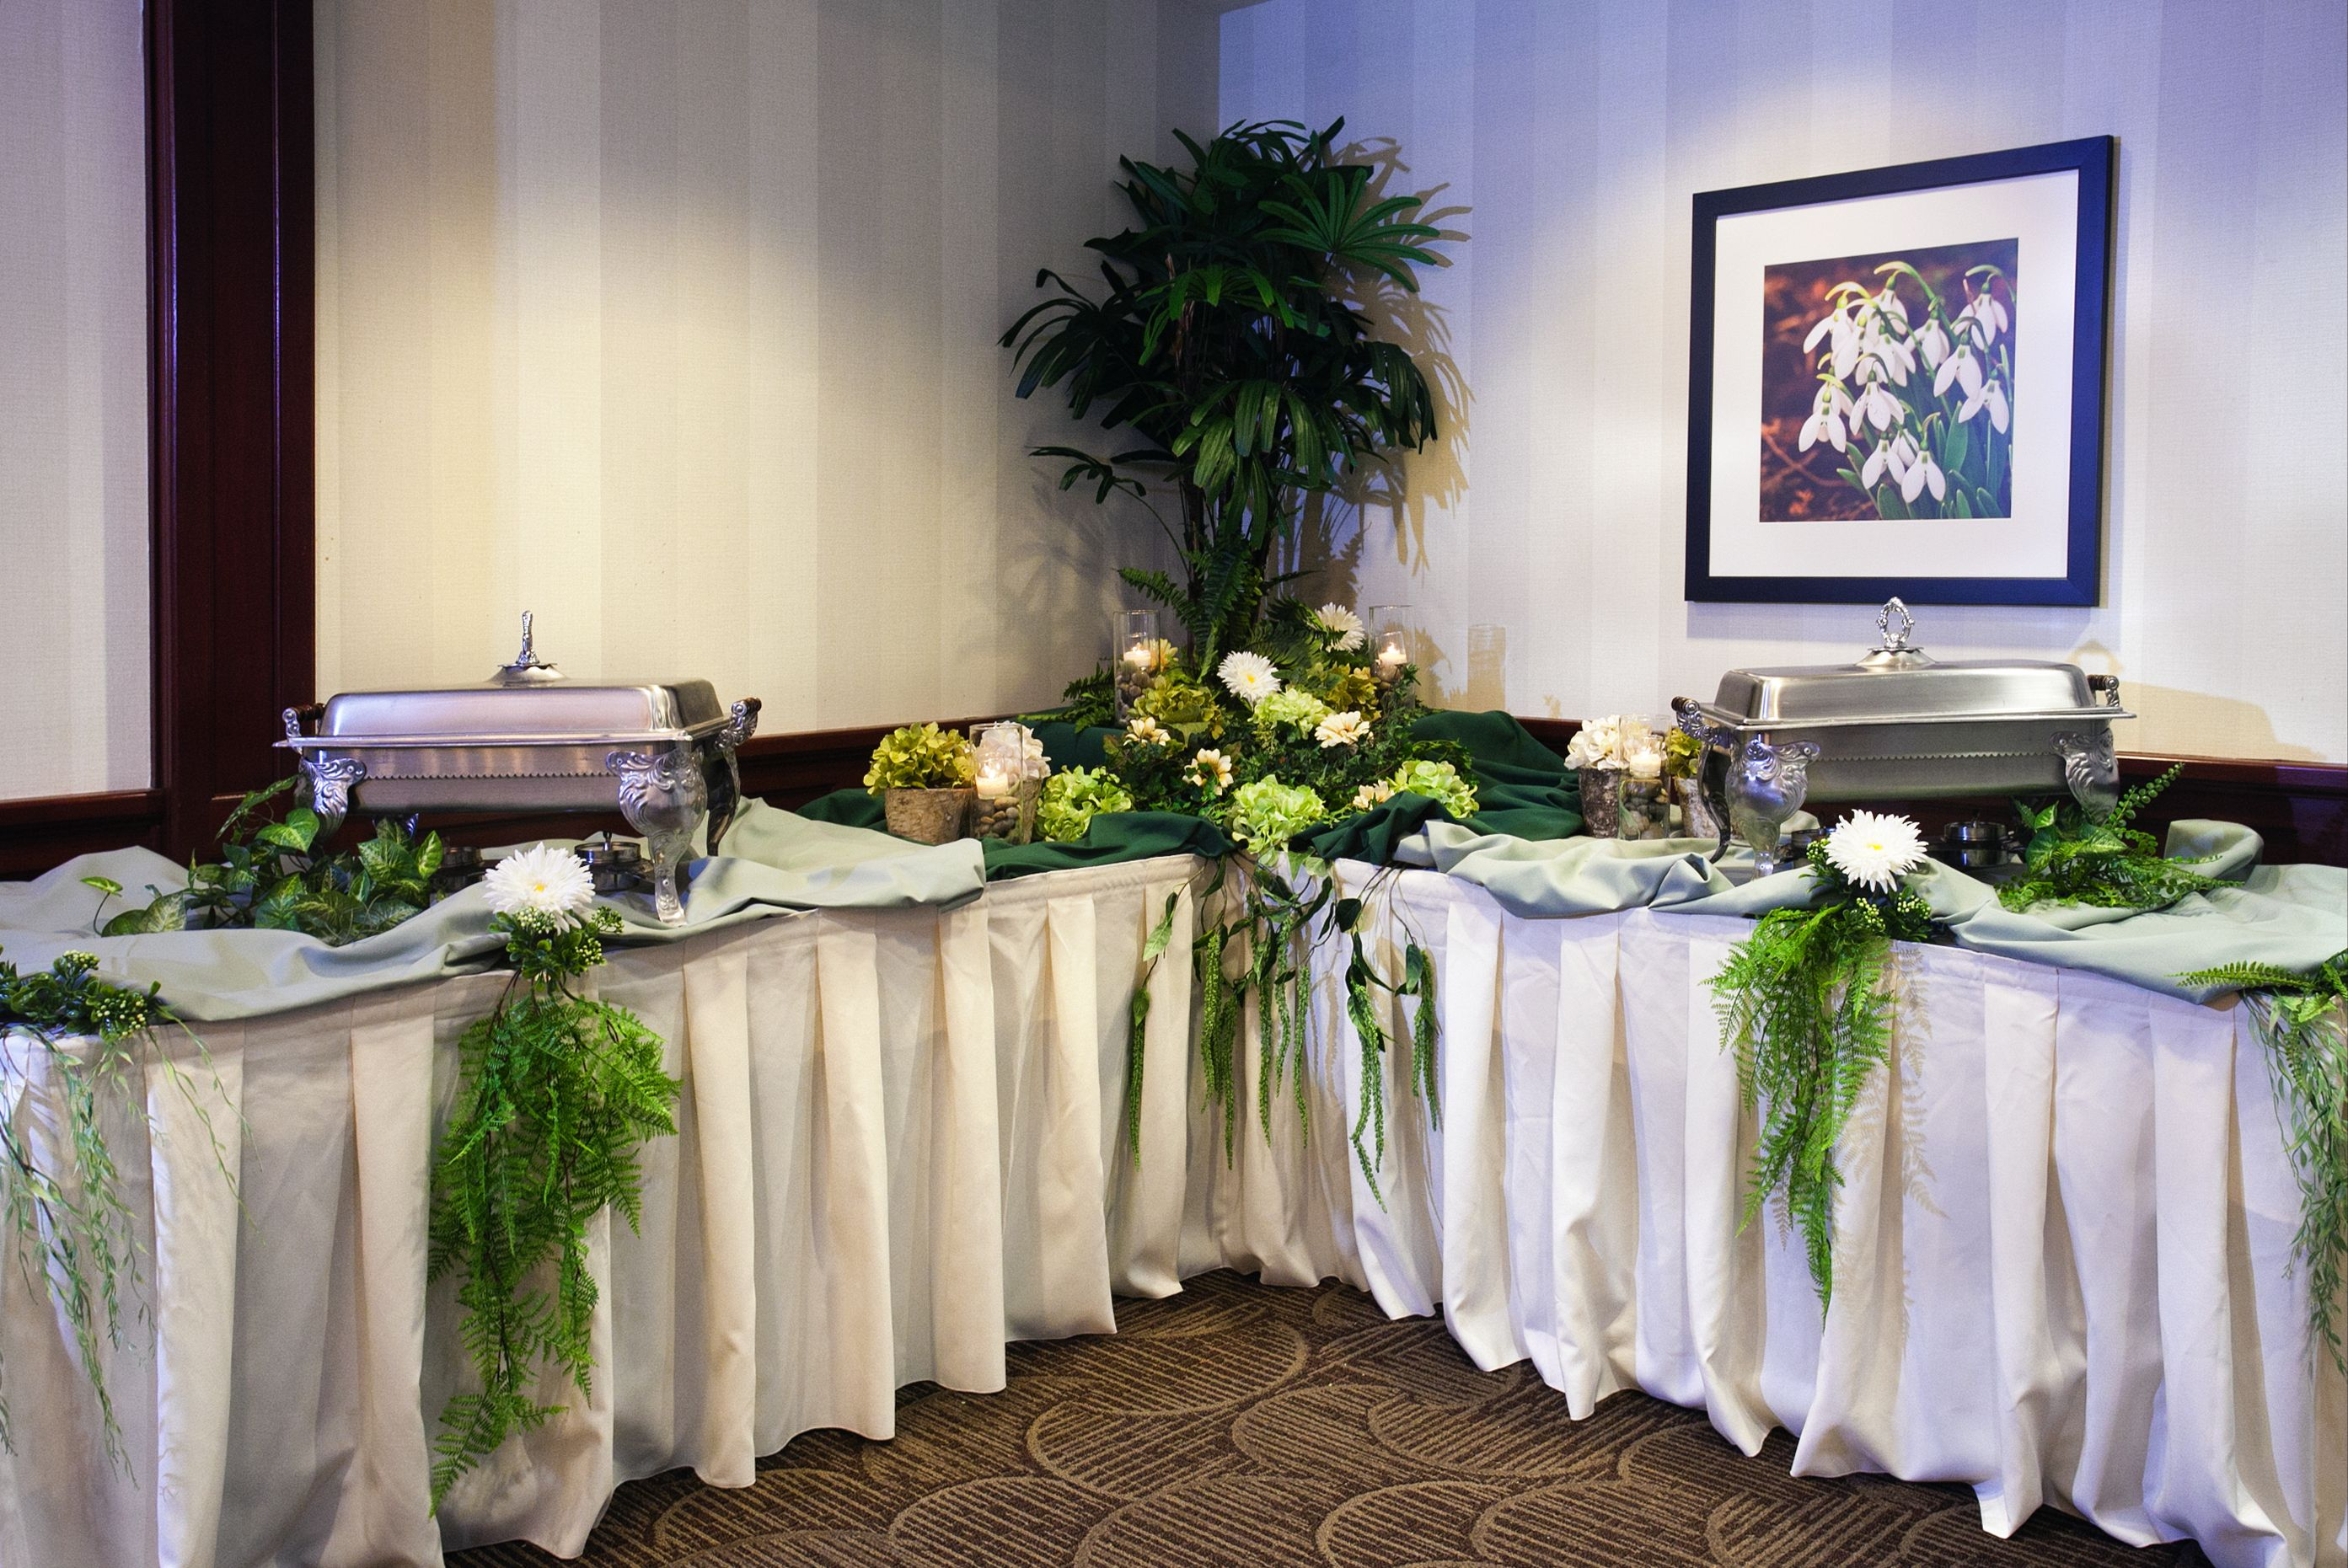 Max S Catering Ideas Table Decorations Buffet Setups Table Decorations Decor Table